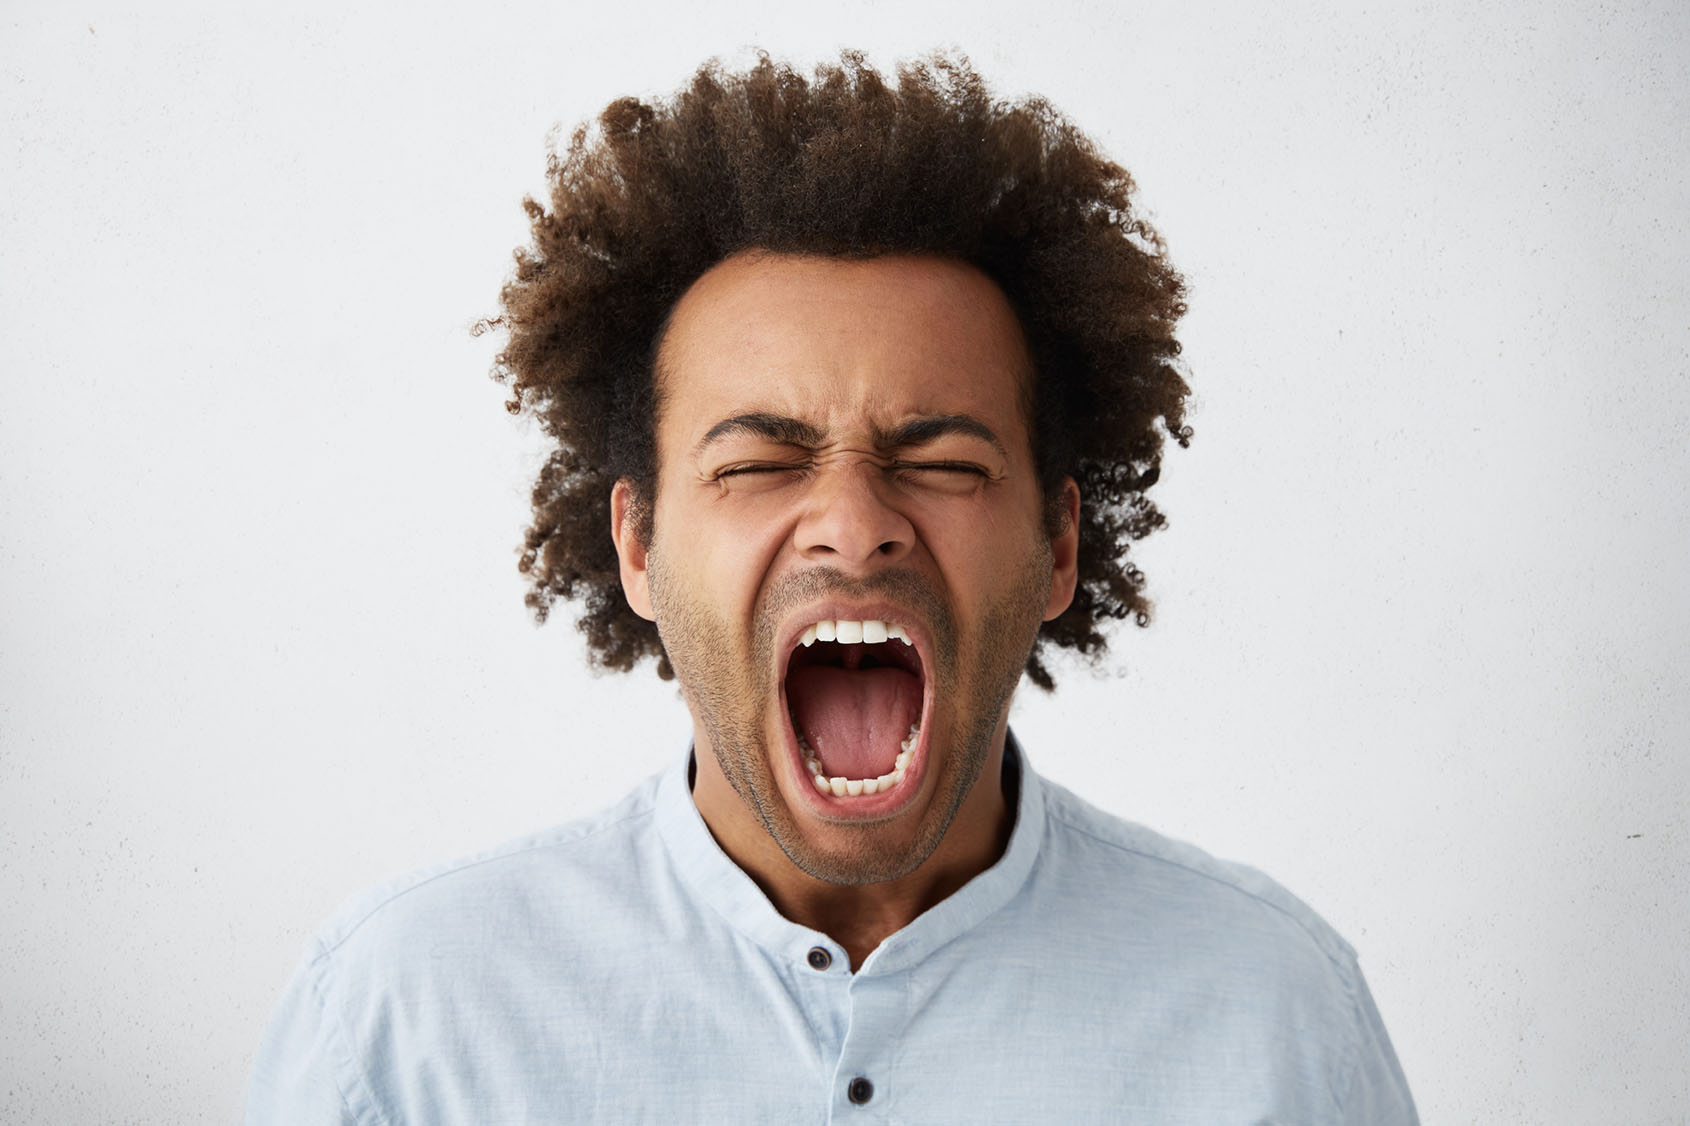 Close-up of Afro American man with bushy hair and pure skin having closed eyes and wide opened mouth screaming with great fear and anger. Furious dark-skinned male with curly hair shouting loudly